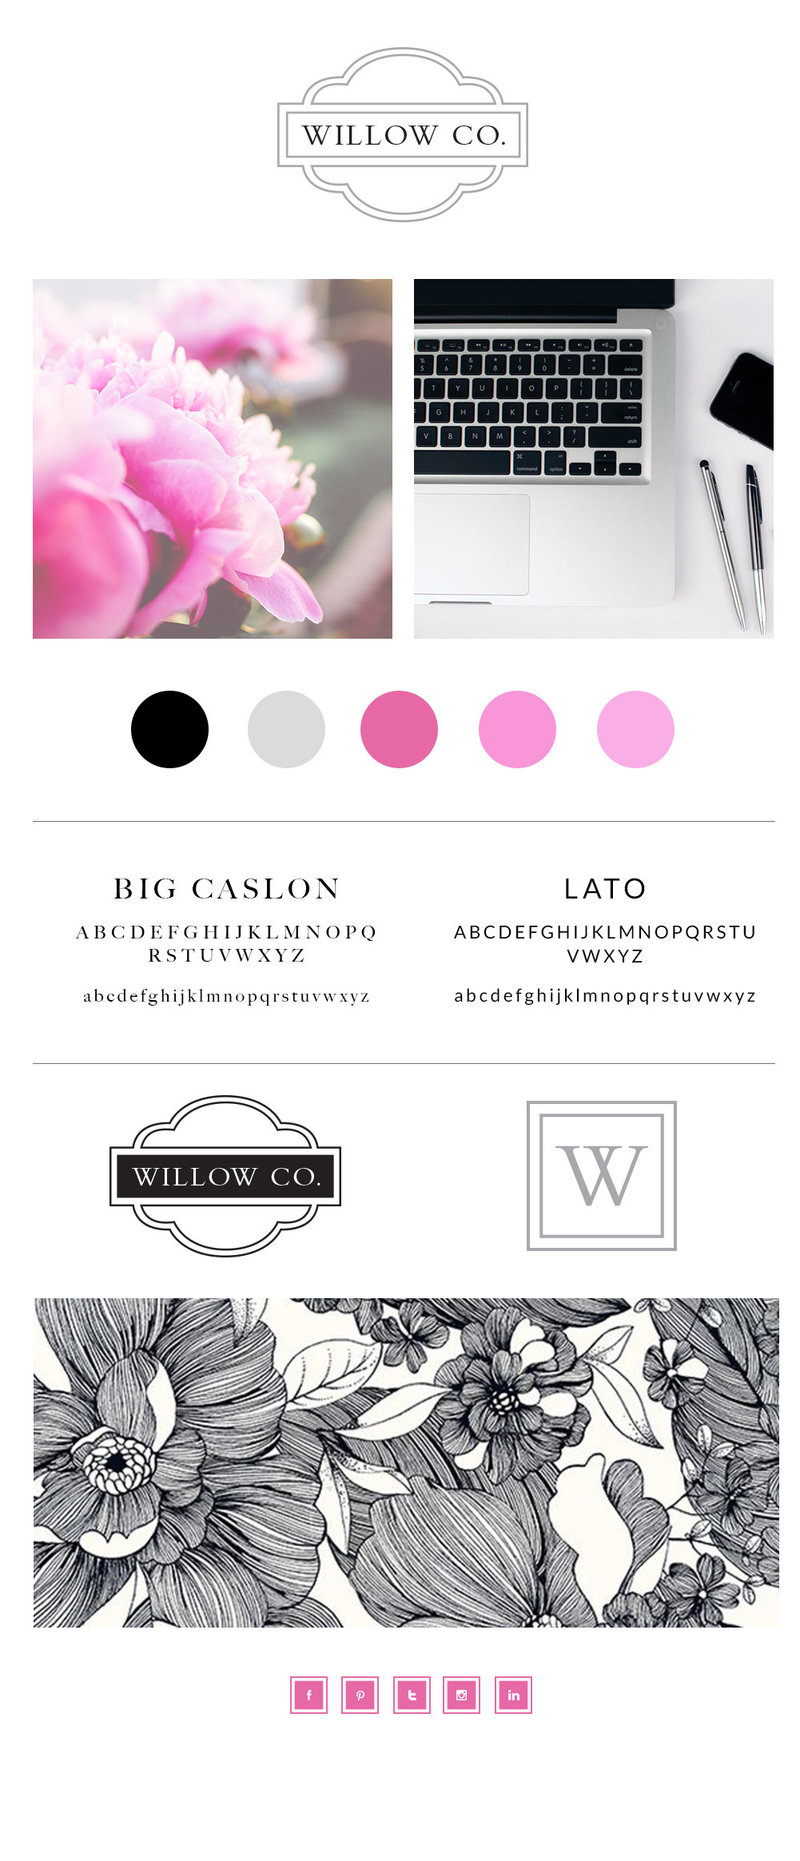 Willow-logo-branding-mood-board